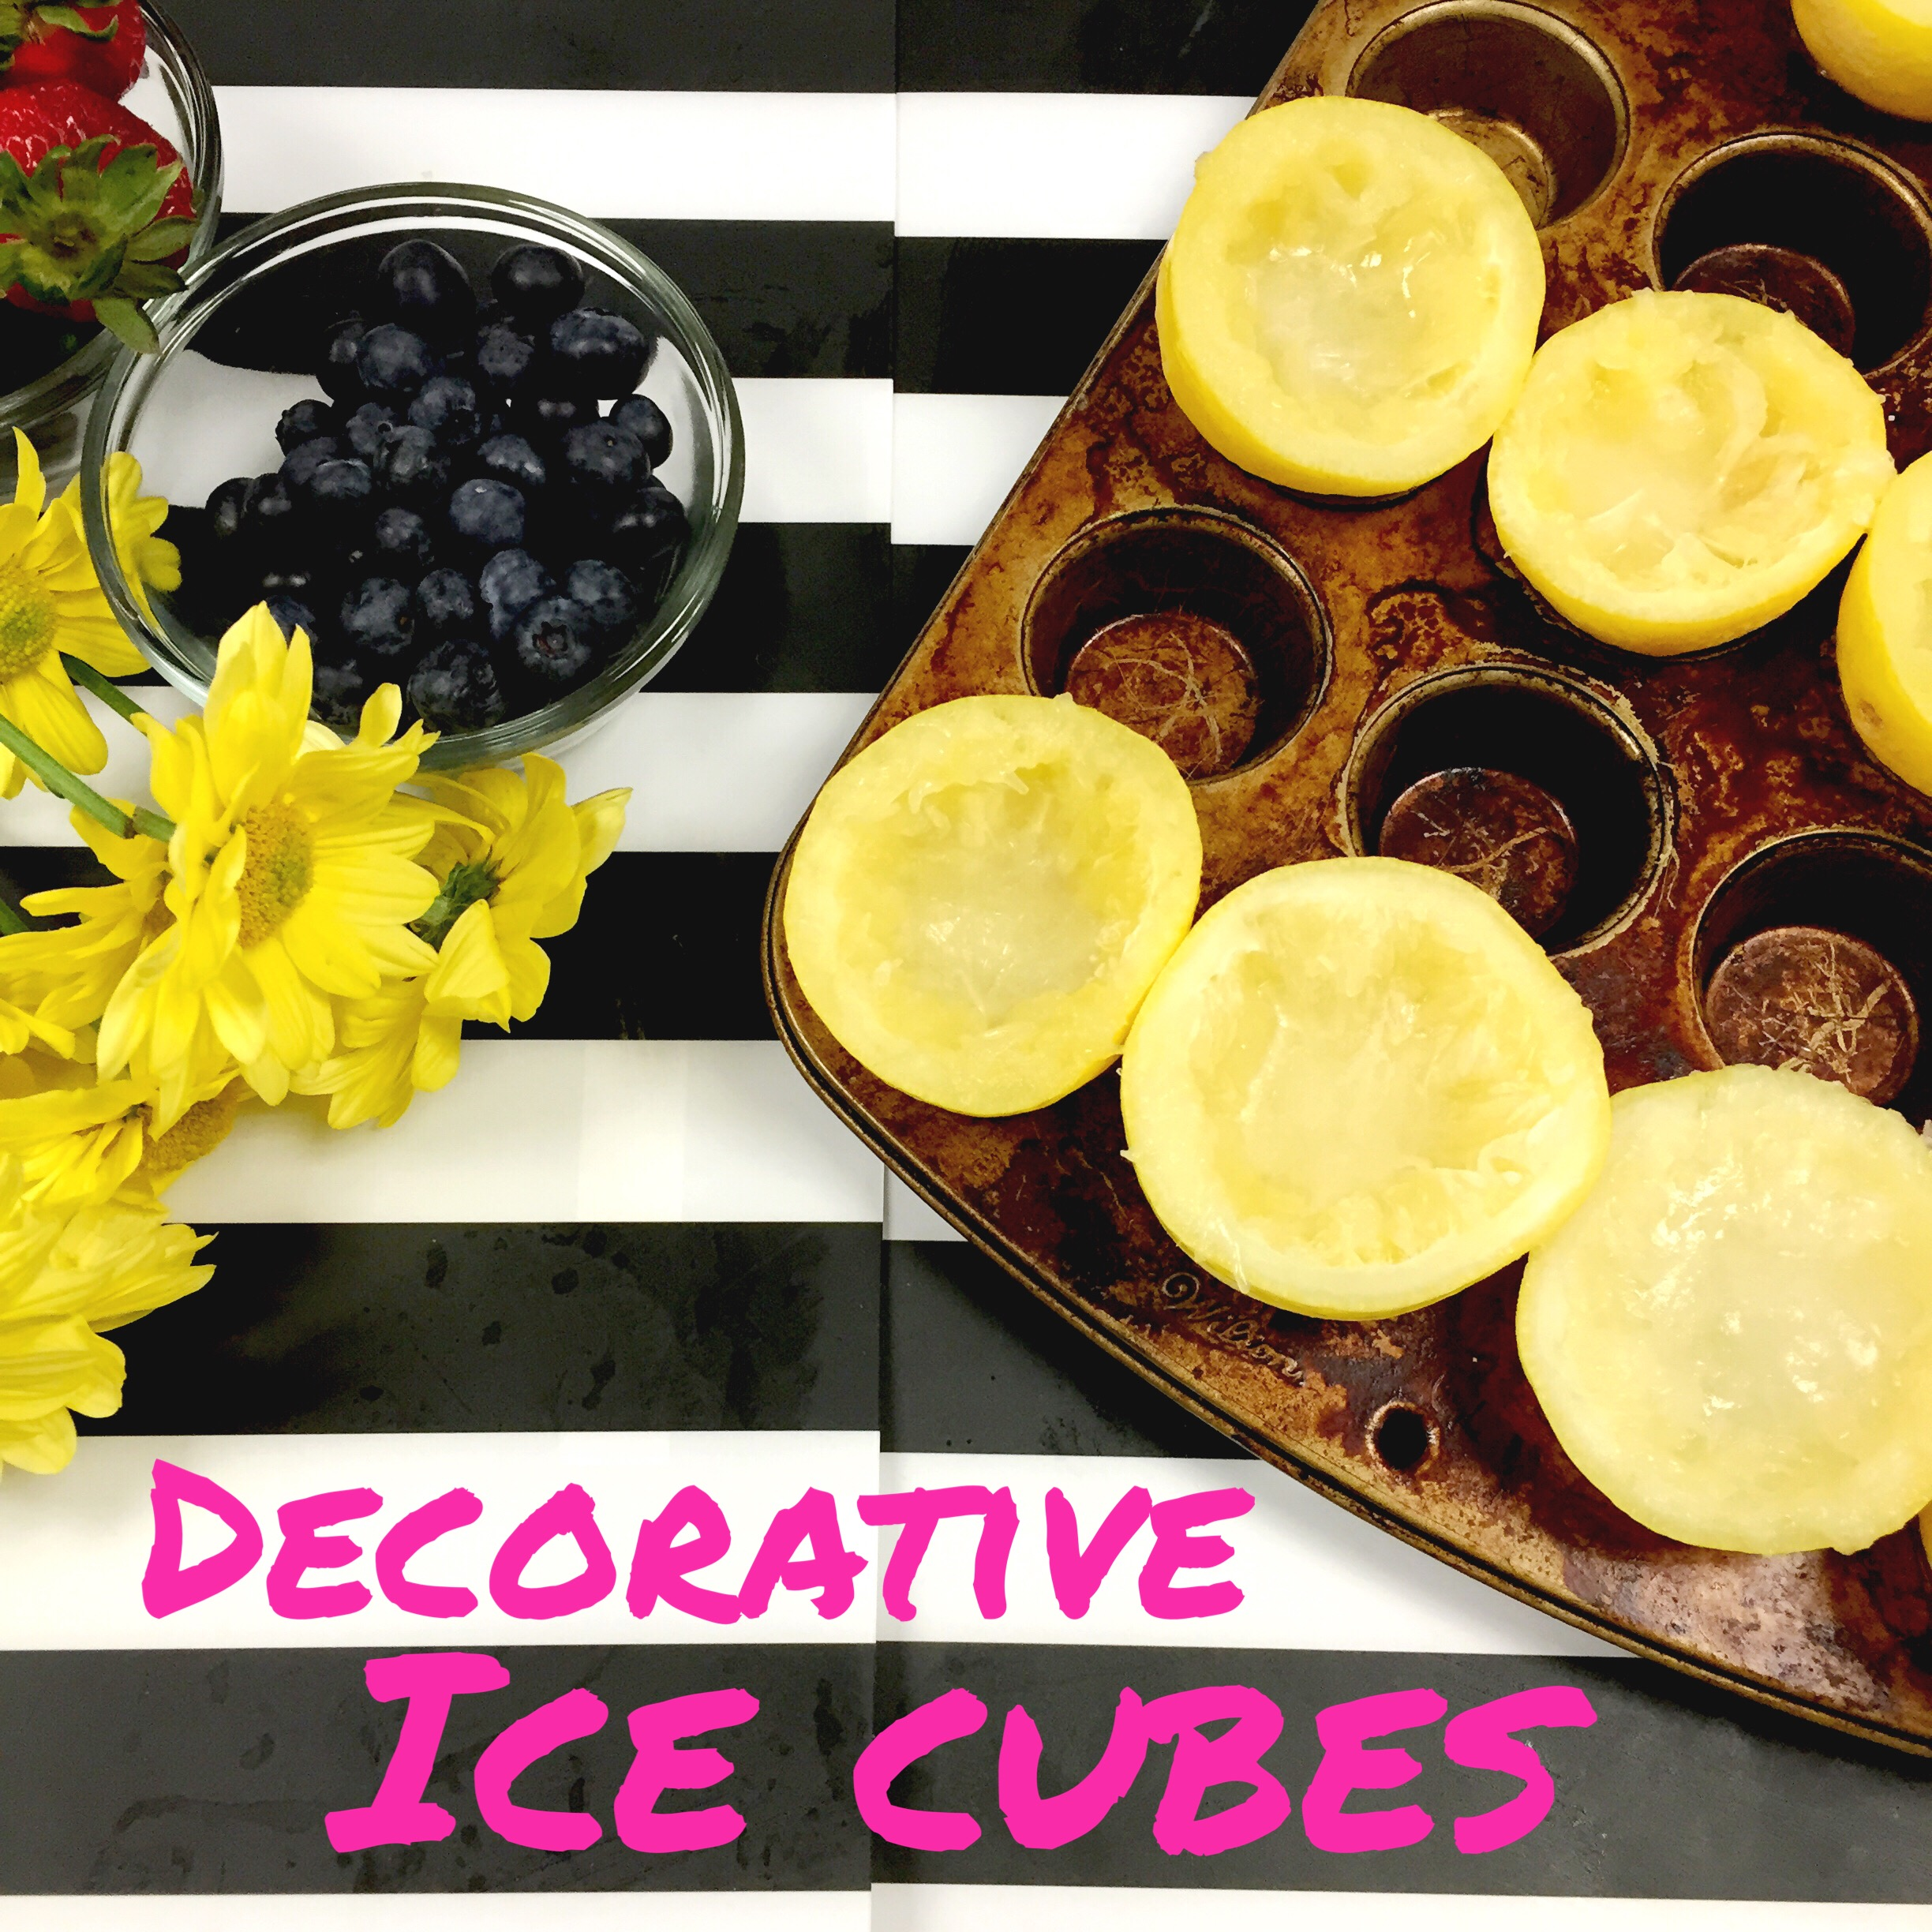 Decorative Ice Cubes- www.ChefShayna.com